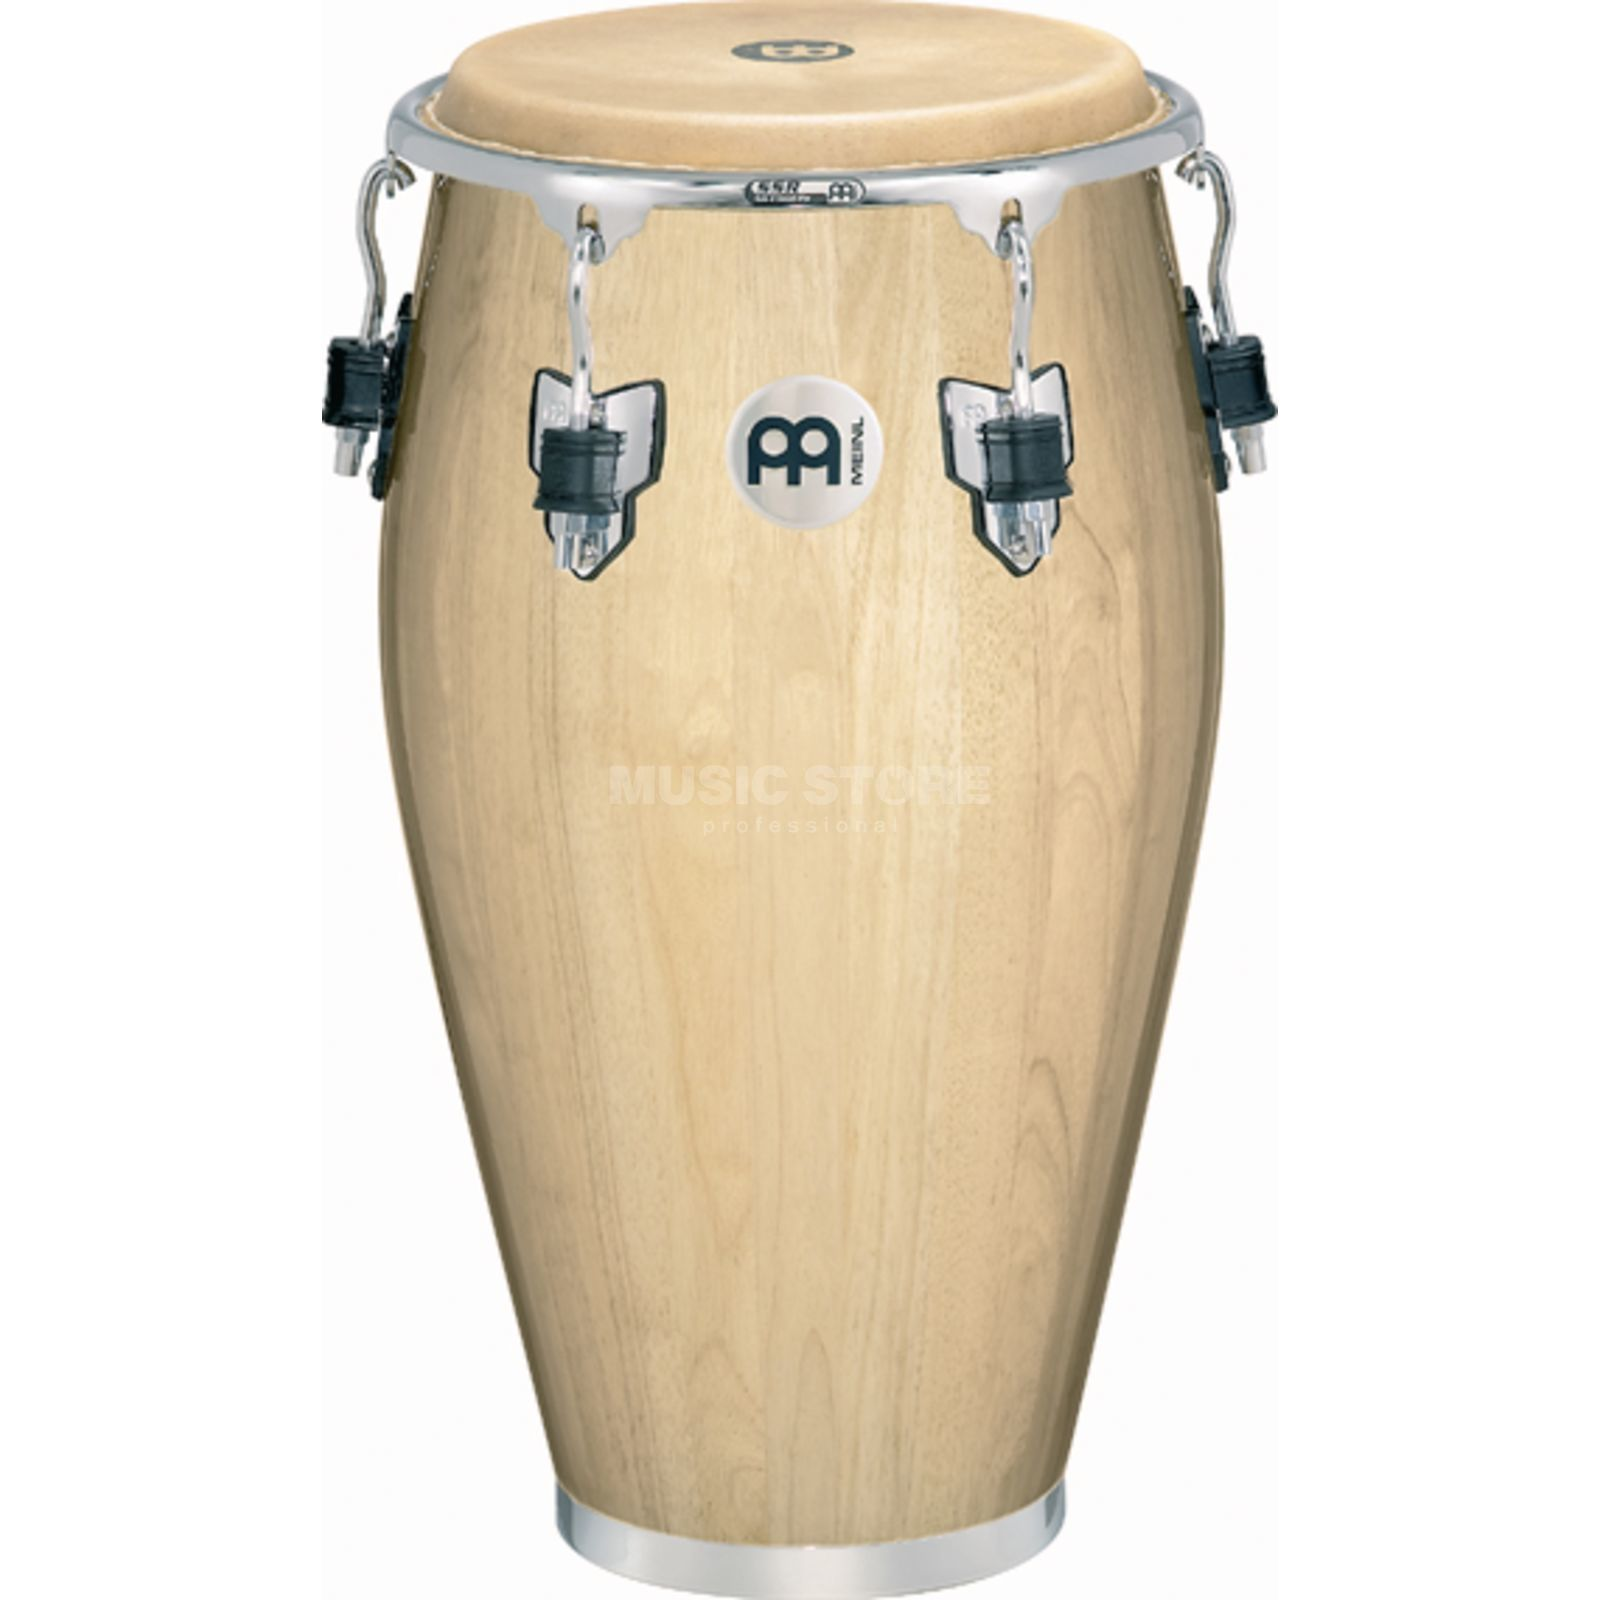 "Meinl Professional Conga MP1212, 12 1/2"" Tumba, Natural,B-Stock Produktbild"